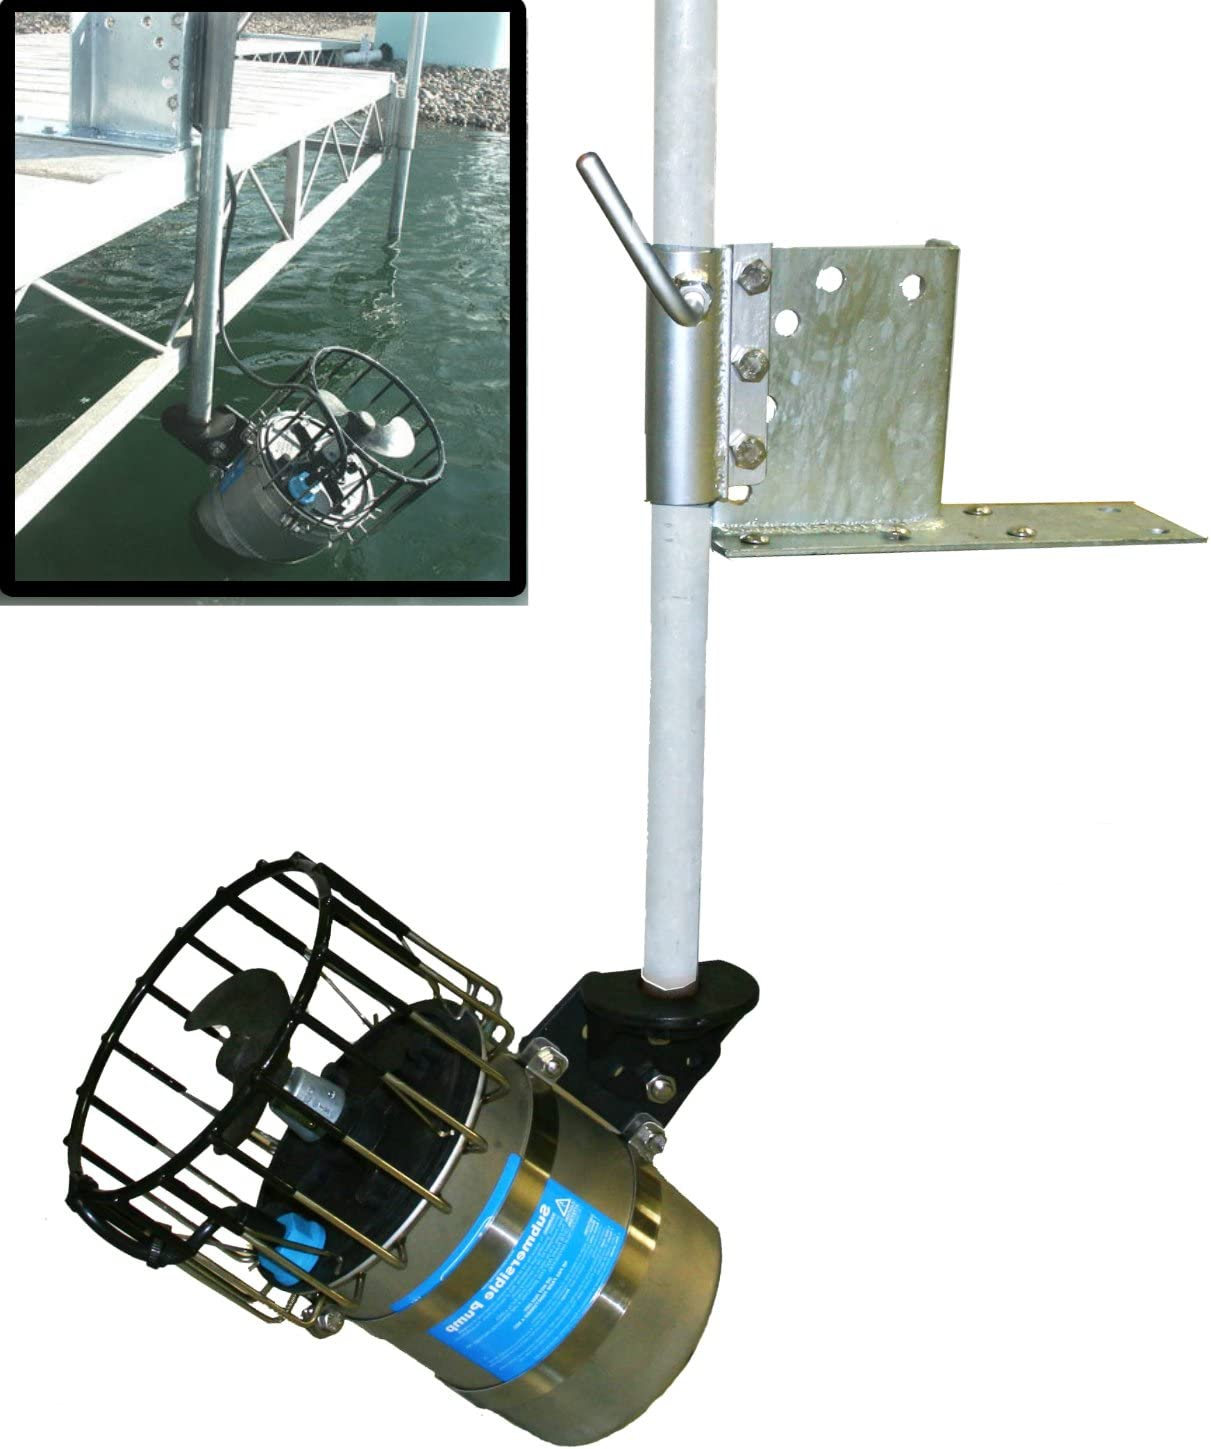 Kasco De-Icer + Universal Dock Pier Mount - 3/4 Hp Deicer with 100ft Power Cord Great for Deicing Lake Pond Marina (3/4HP w/50ft Cord)